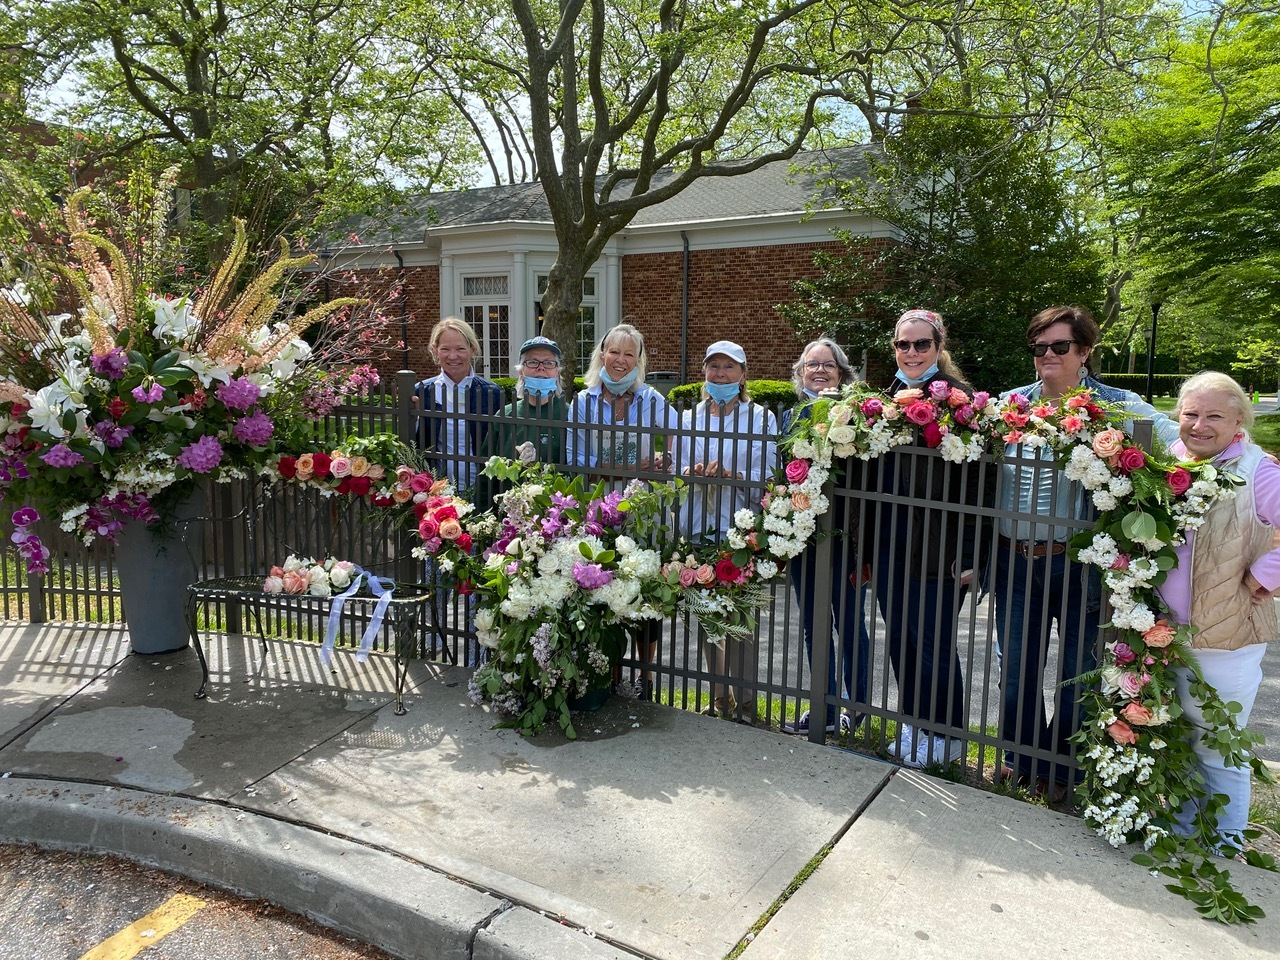 Members of The Southampton Garden, left to right: Deb dela Gueronneire, Lydia Wallis, Cindy Willis, Christl Meszkat, Janis Murphy, Barbara Glatt, Erin Meaney, Elizabeth Robertson, created a surprise 'Flower Flash' on the grounds of Stony Brook Southampton Hospital earlier this month to thank staff and employees for all they do for our community. Using flowers from local flower shop Topiare and member's own gardens, the display was conceived and executed under the direction of club president Barbara Glatt and members Erin Hattrick Meaney and Cindy Willis.